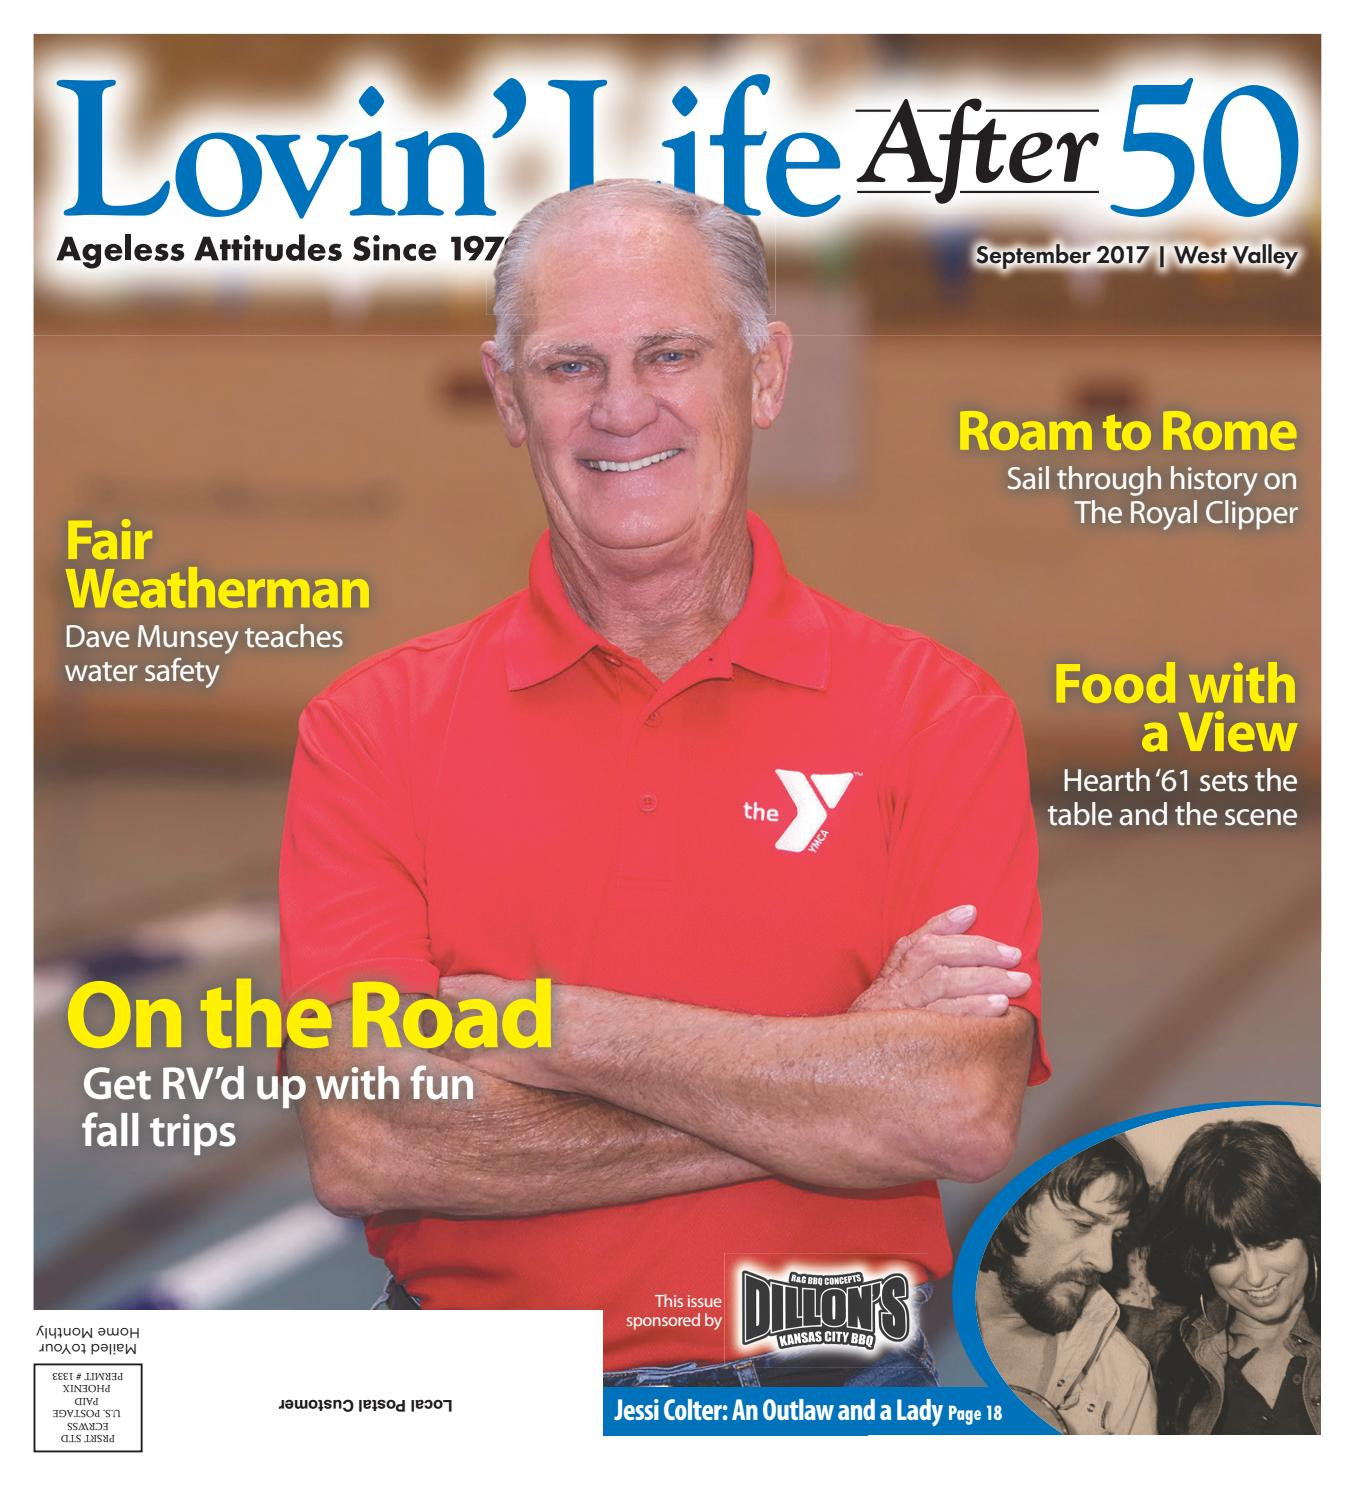 Lovin Life After 50 West Valley September 2017 By Times Media Aqua Water Jogging Belt For Your Run Cross Training Post Stroke Attack Size M Group Issuu